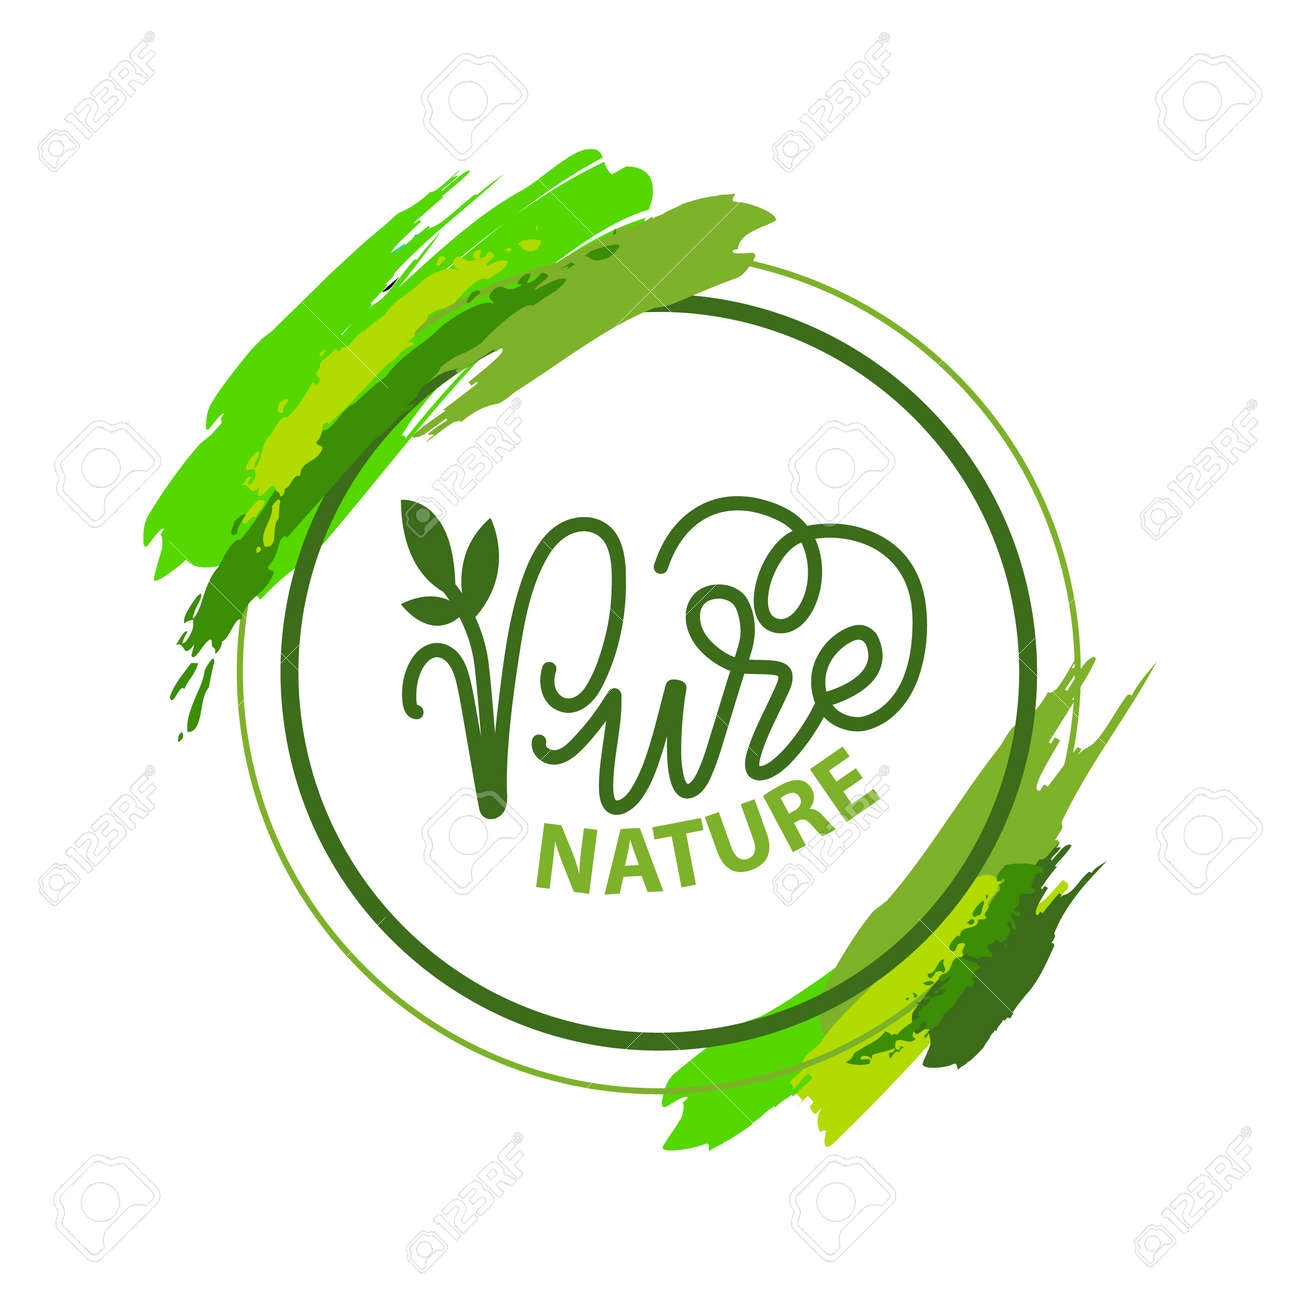 Pure nature lettering and green calligraphy, garden plant isolated in round frame with brush strokes. Vector label of ecology friendly nature - 125252678